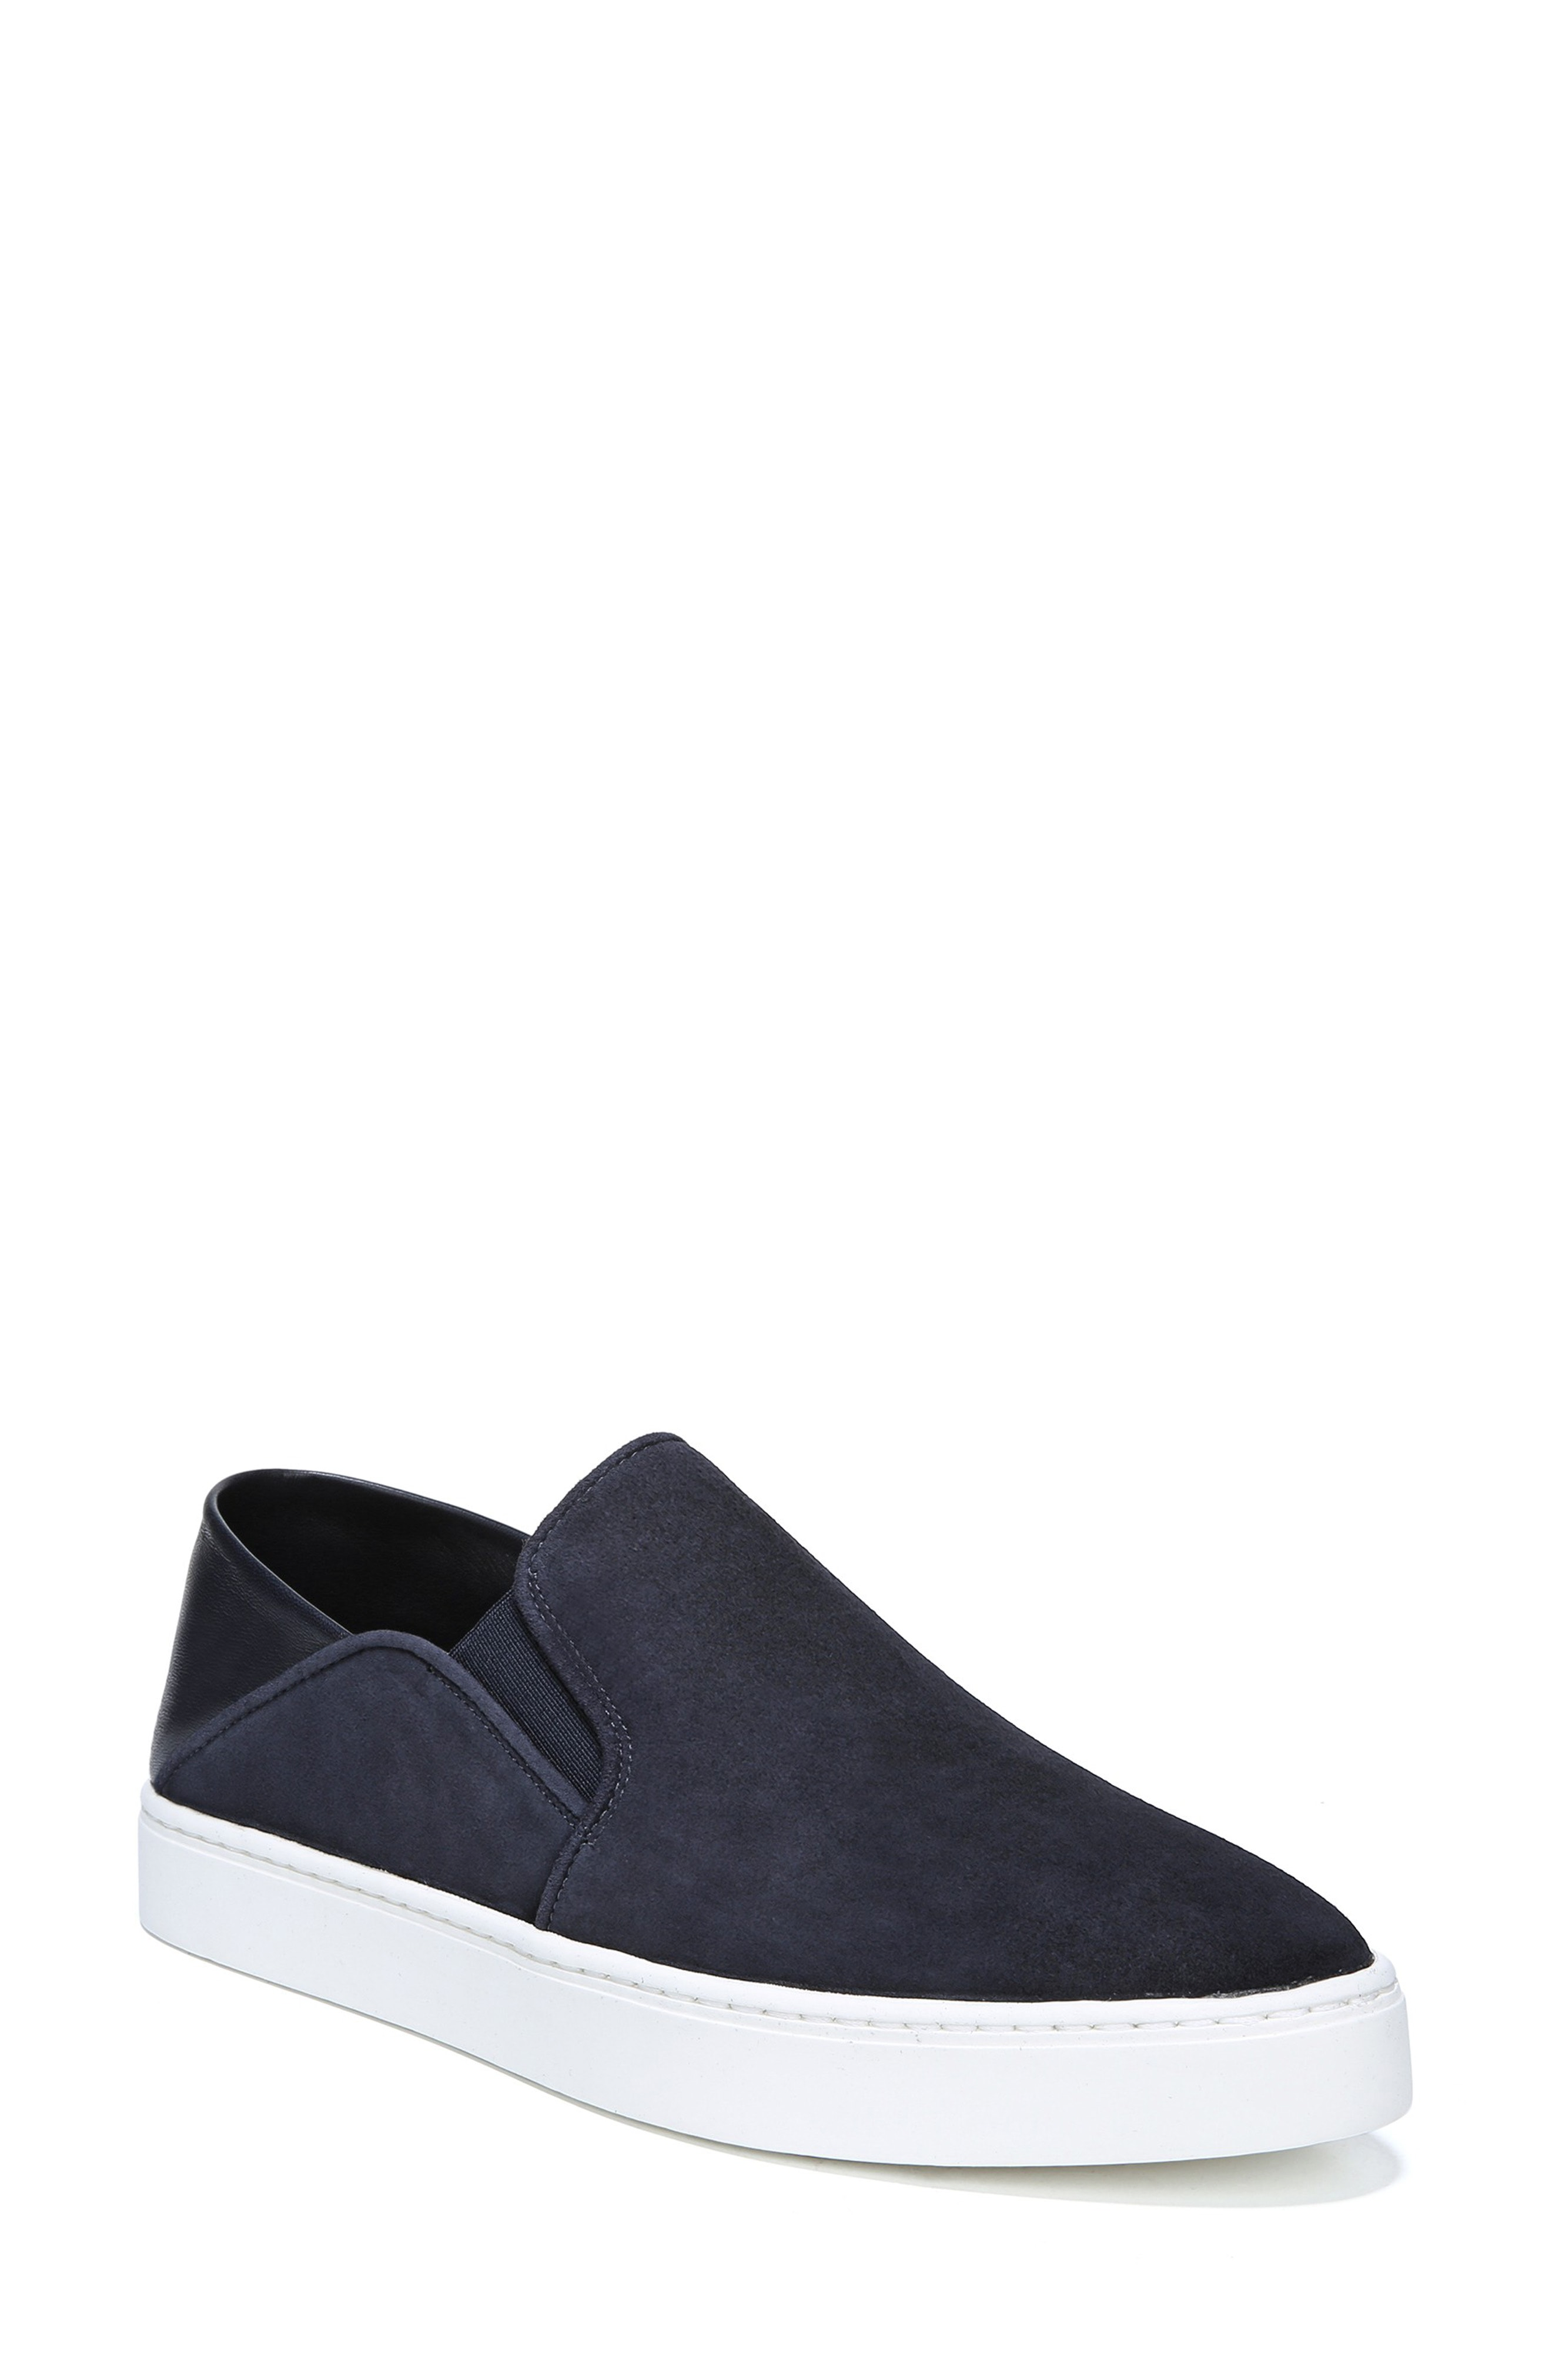 Slip-Ons Vince Shoes for Women | Nordstrom